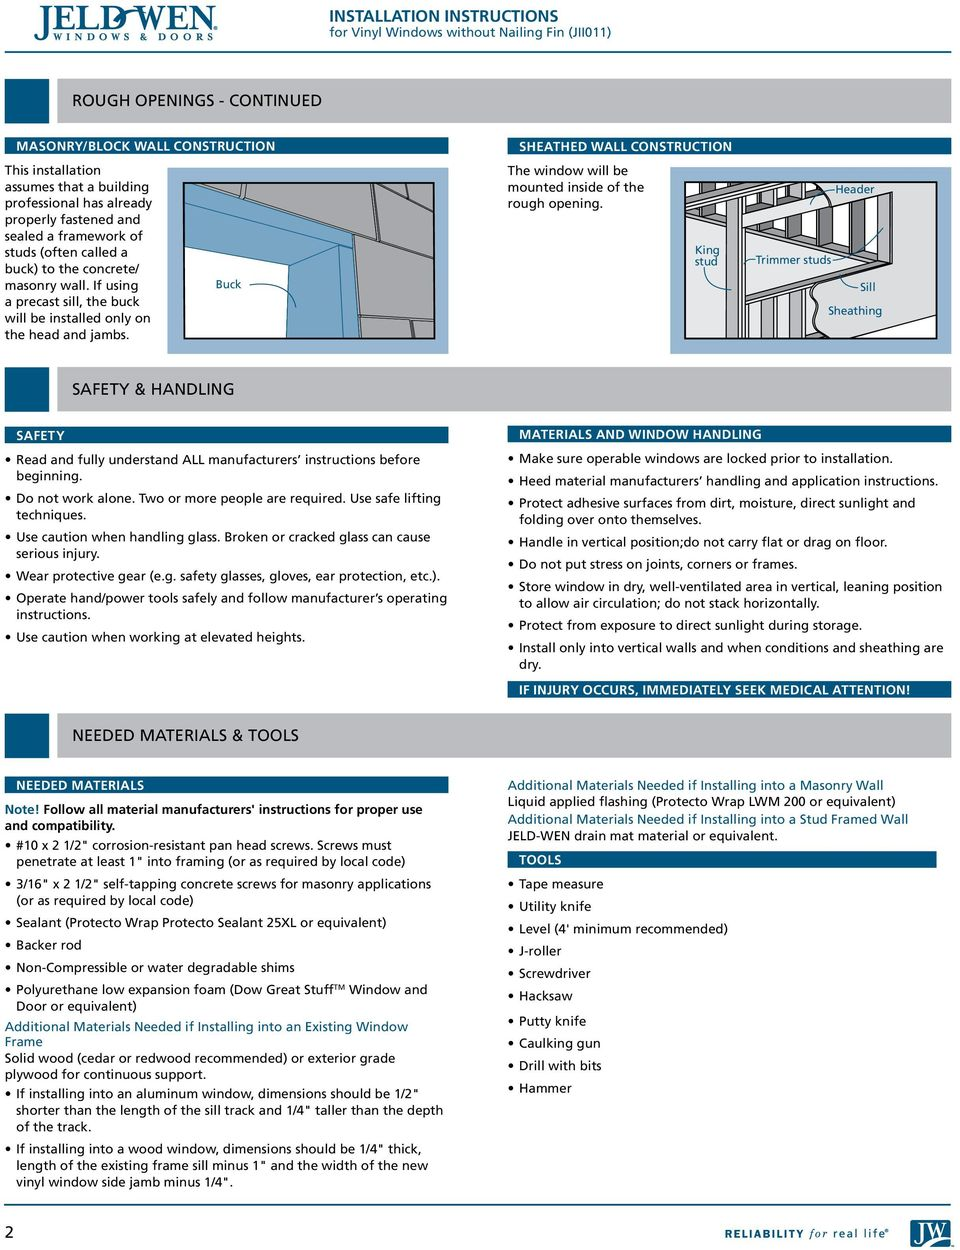 INSTALLATION INSTRUCTIONS for Vinyl Windows without Nailing Fin